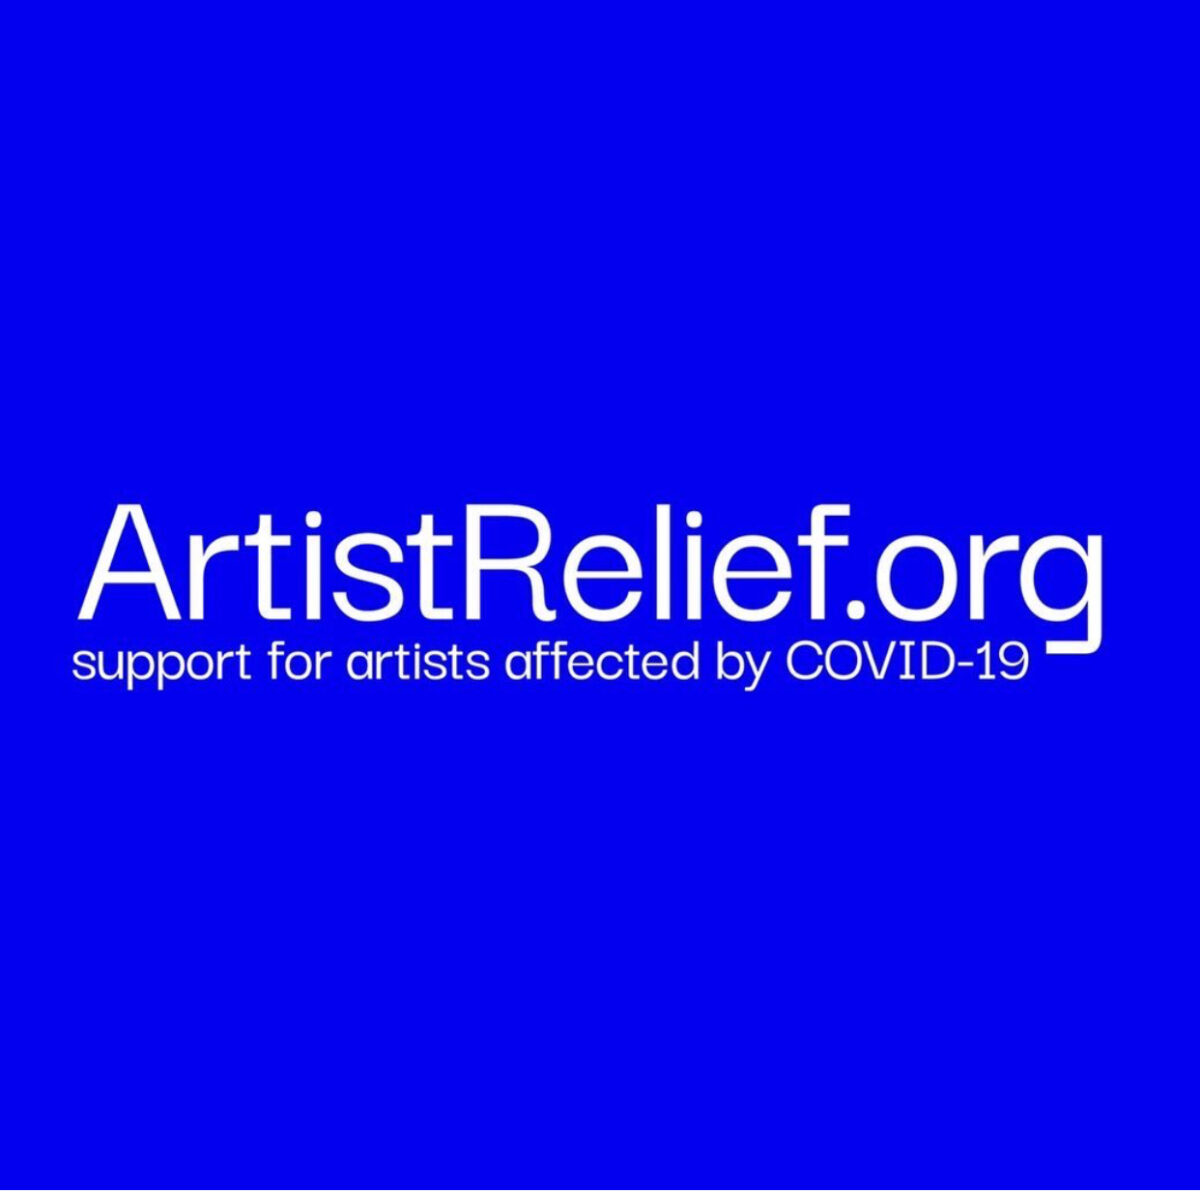 Coalition of Arts Funders Launches Emergency Artist Relief Fund